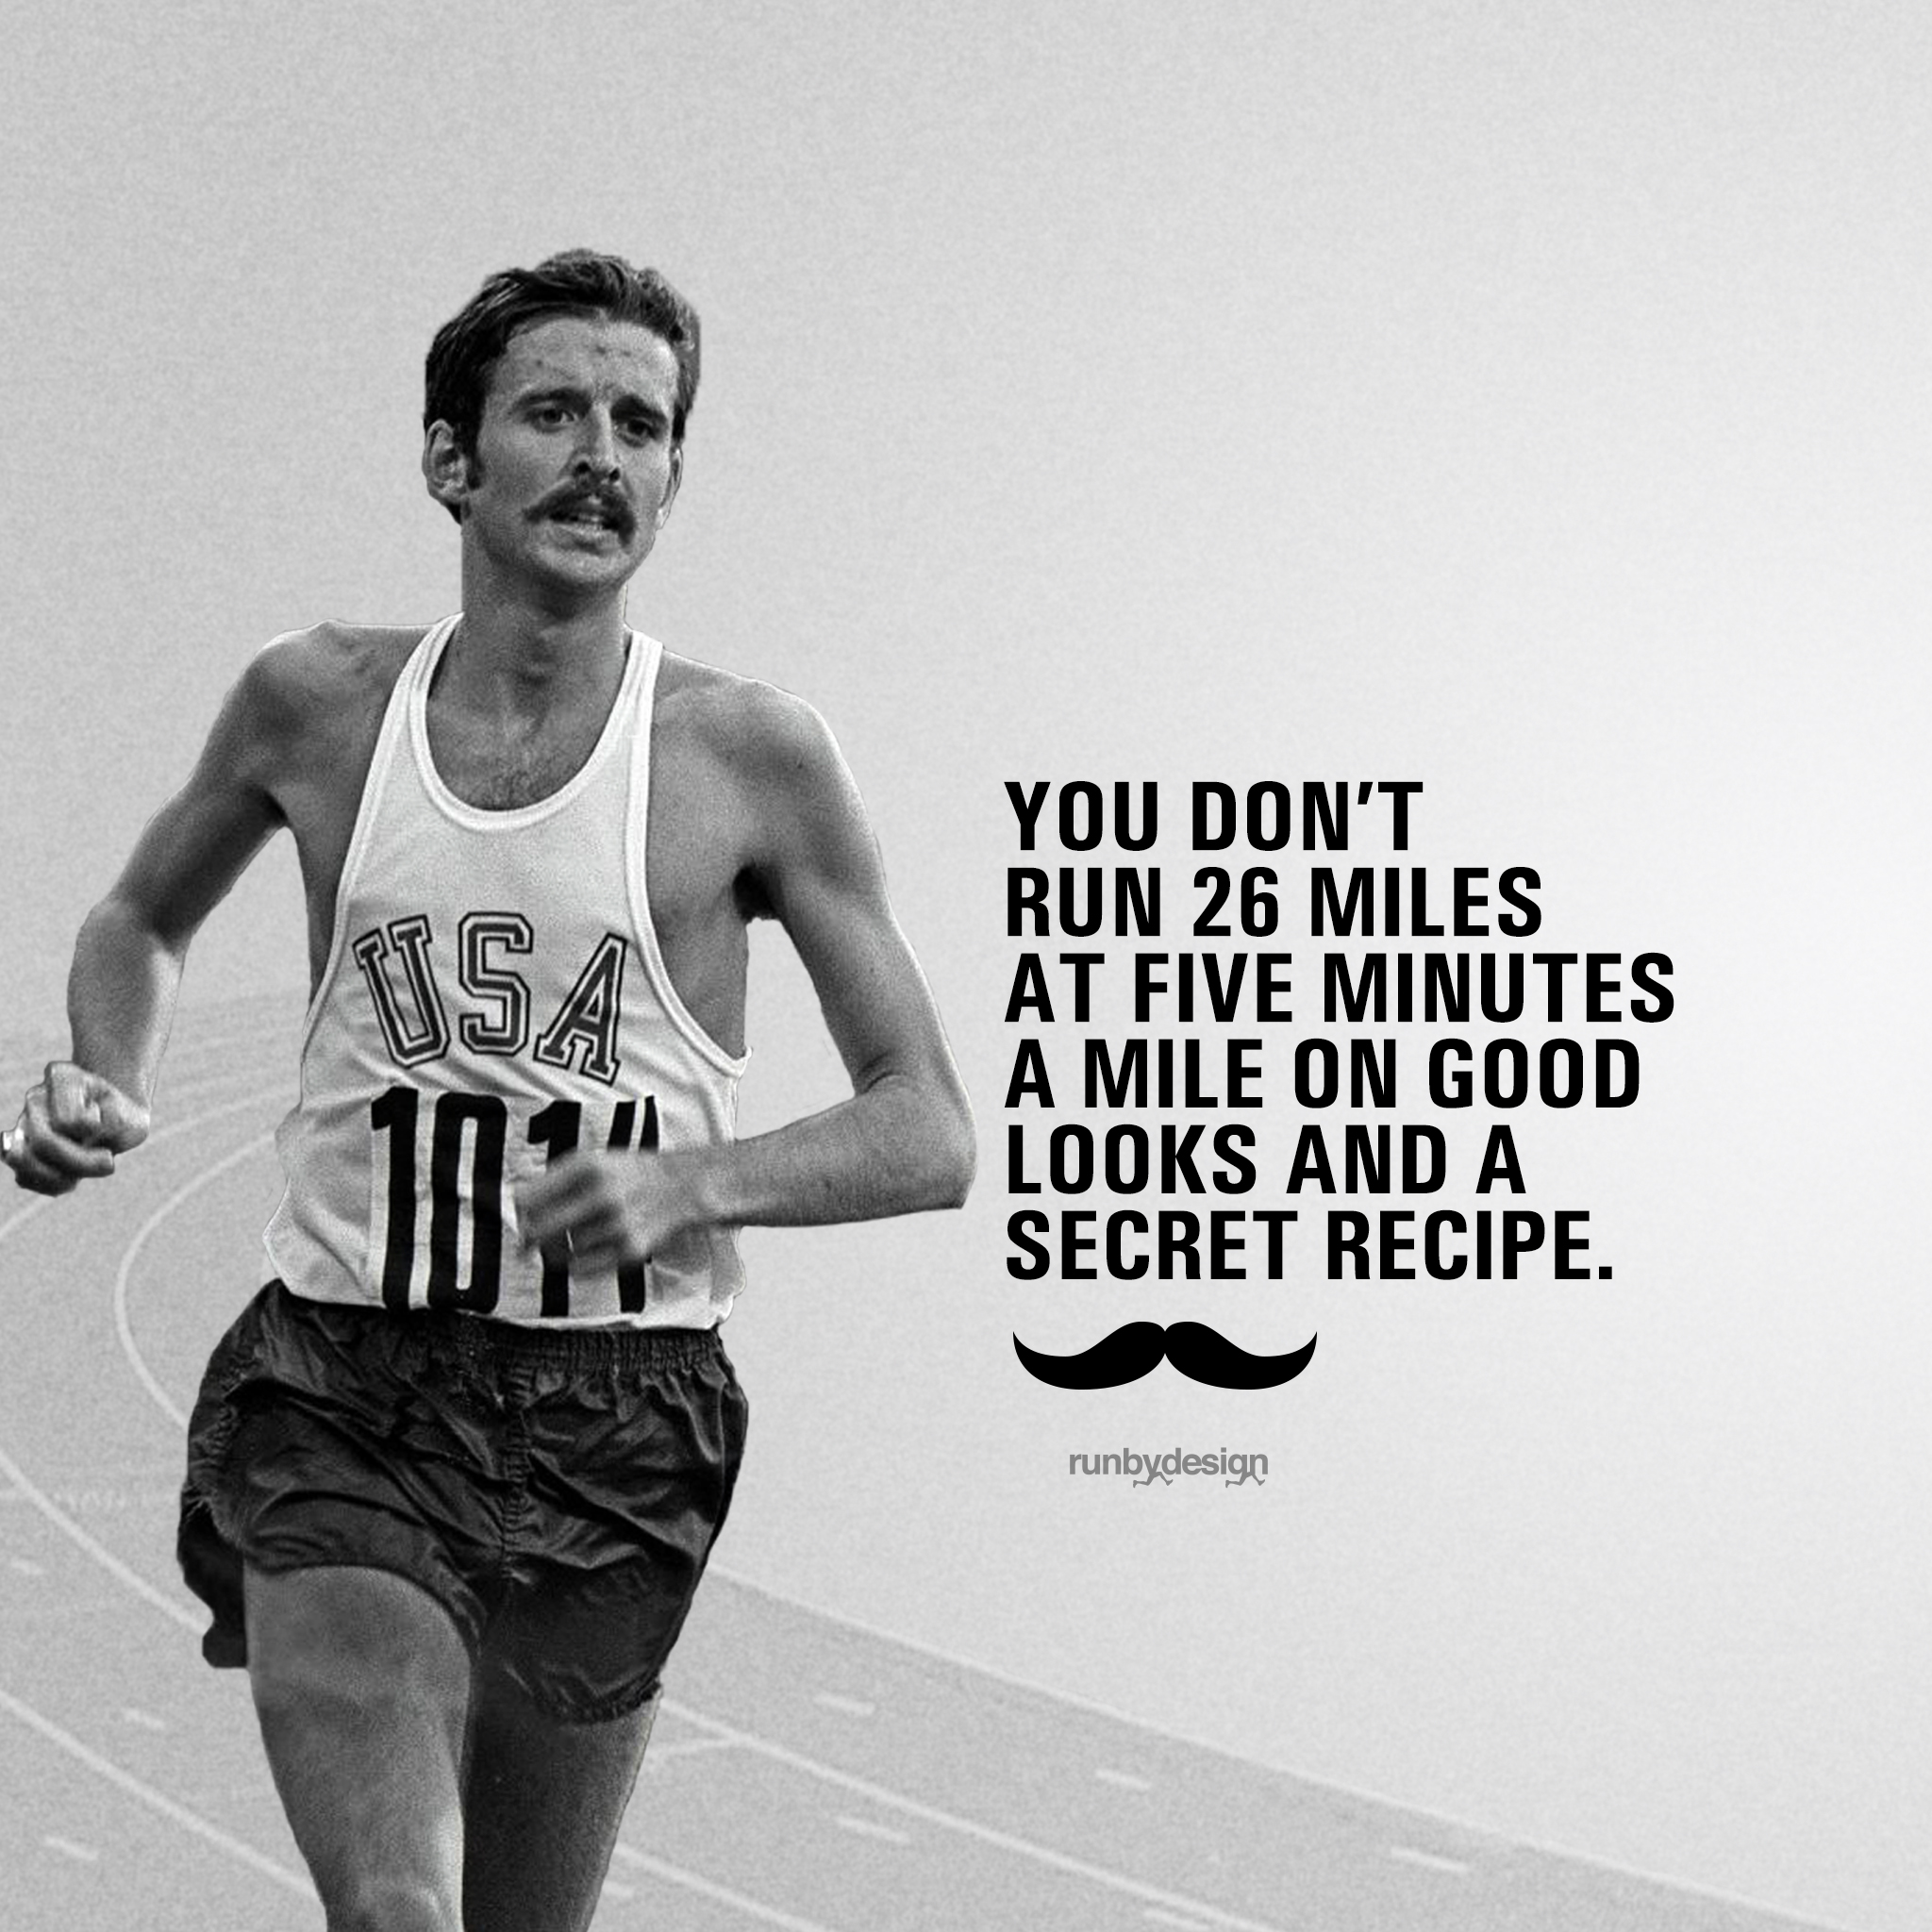 Frank Shorter's quote #1